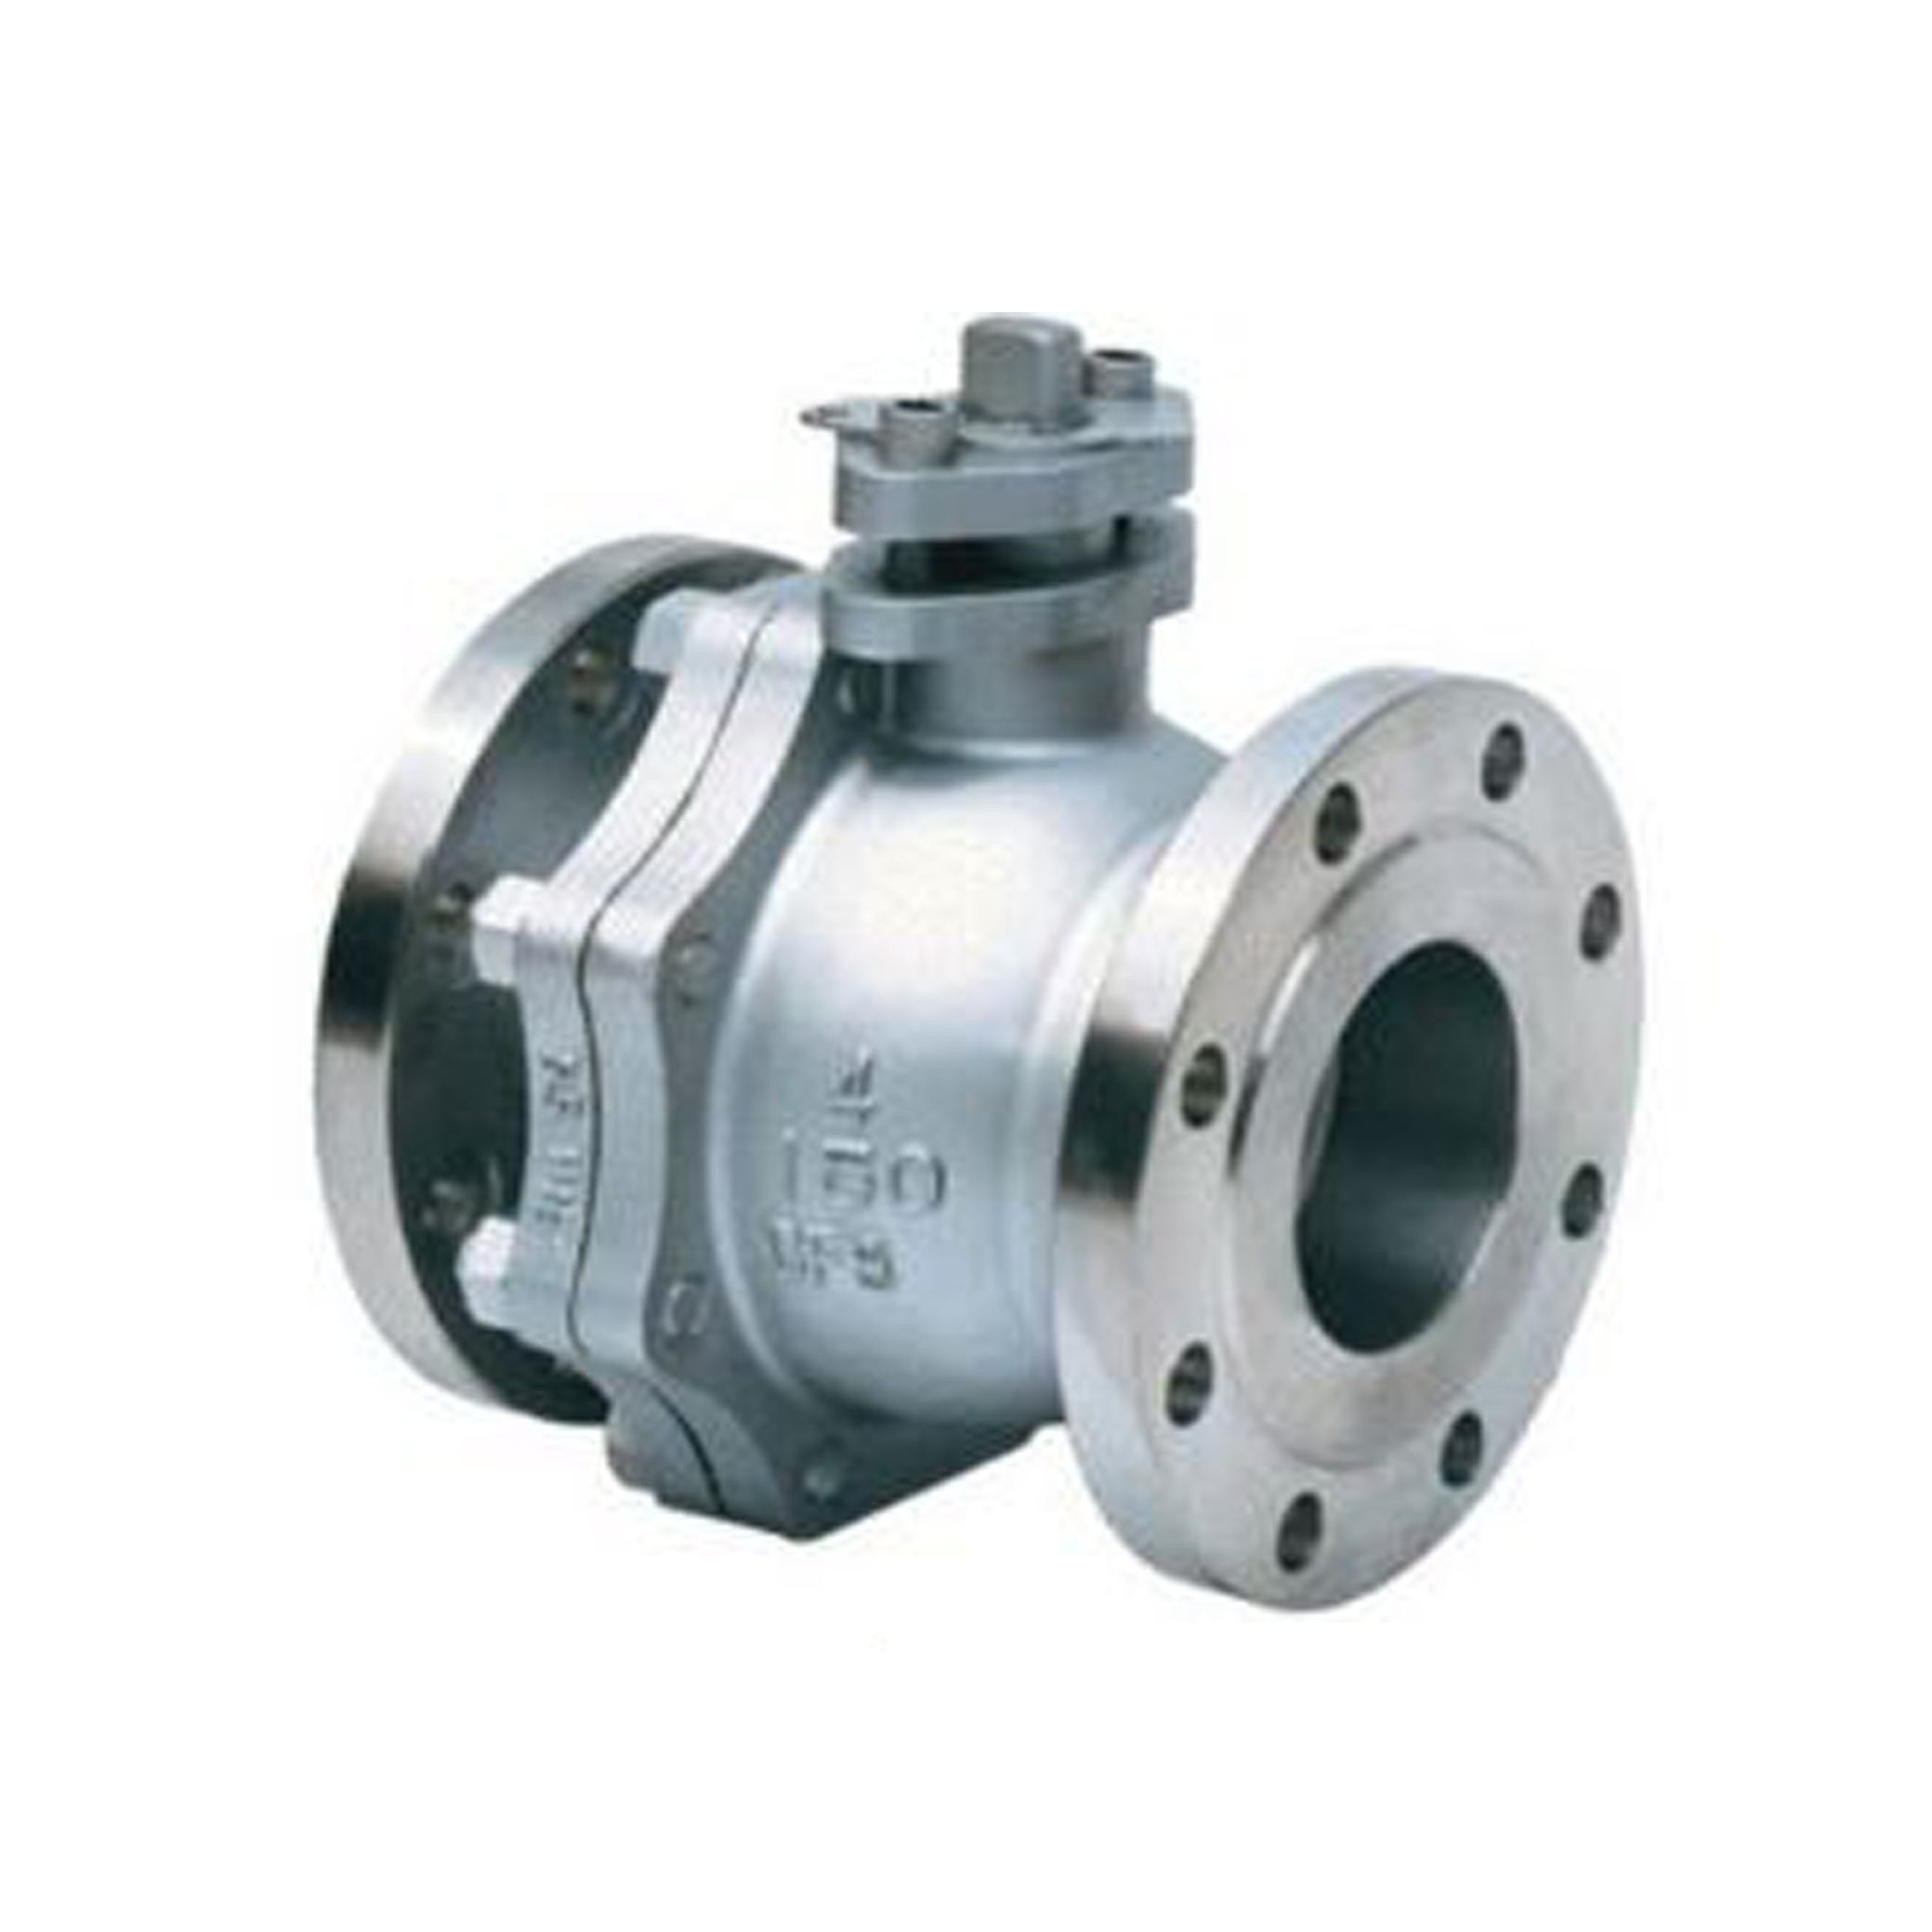 MZC Stainless Ball Valve Flange End